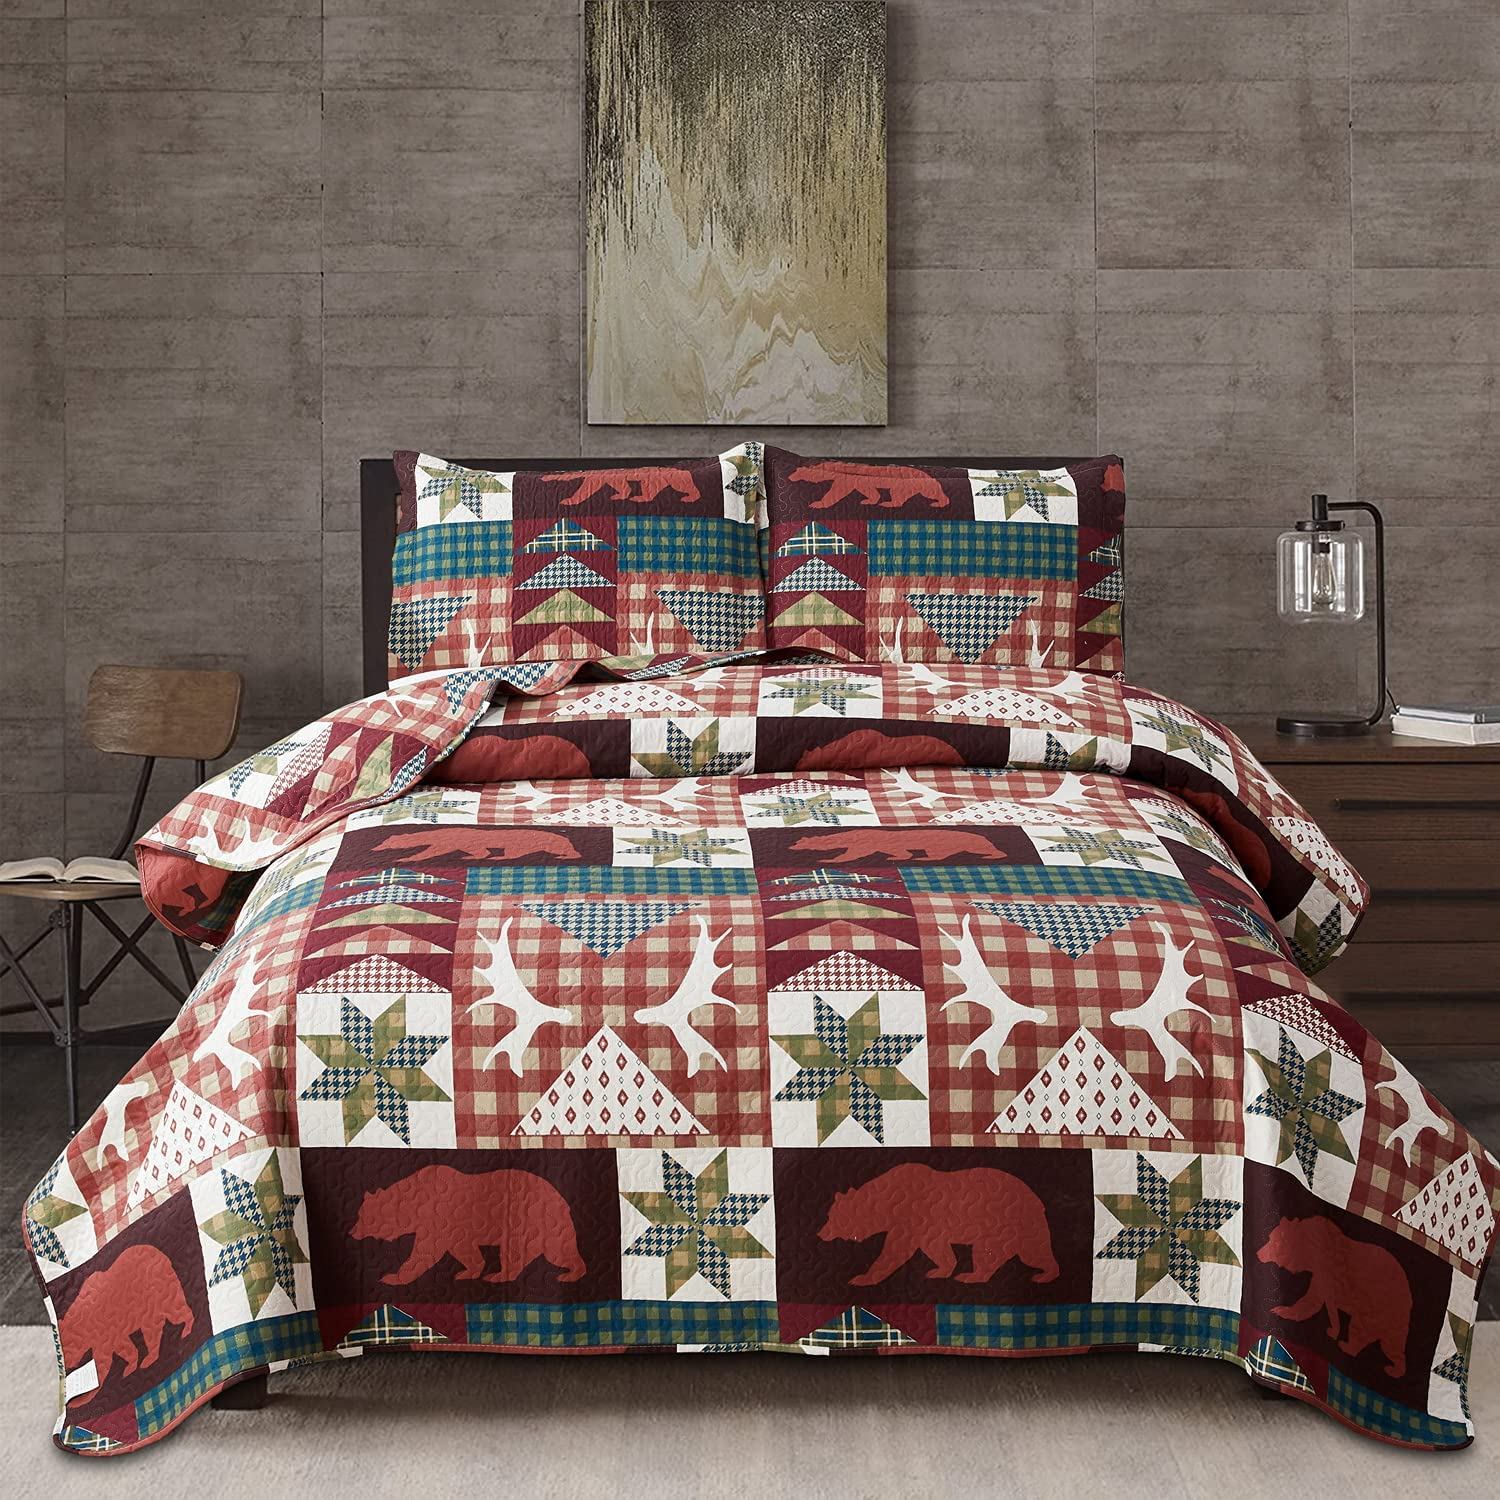 3-Piece Lodge Free shipping on posting reviews Bedspread Ranking TOP1 Twin Size Bear Quilt Set Moose Lightwei